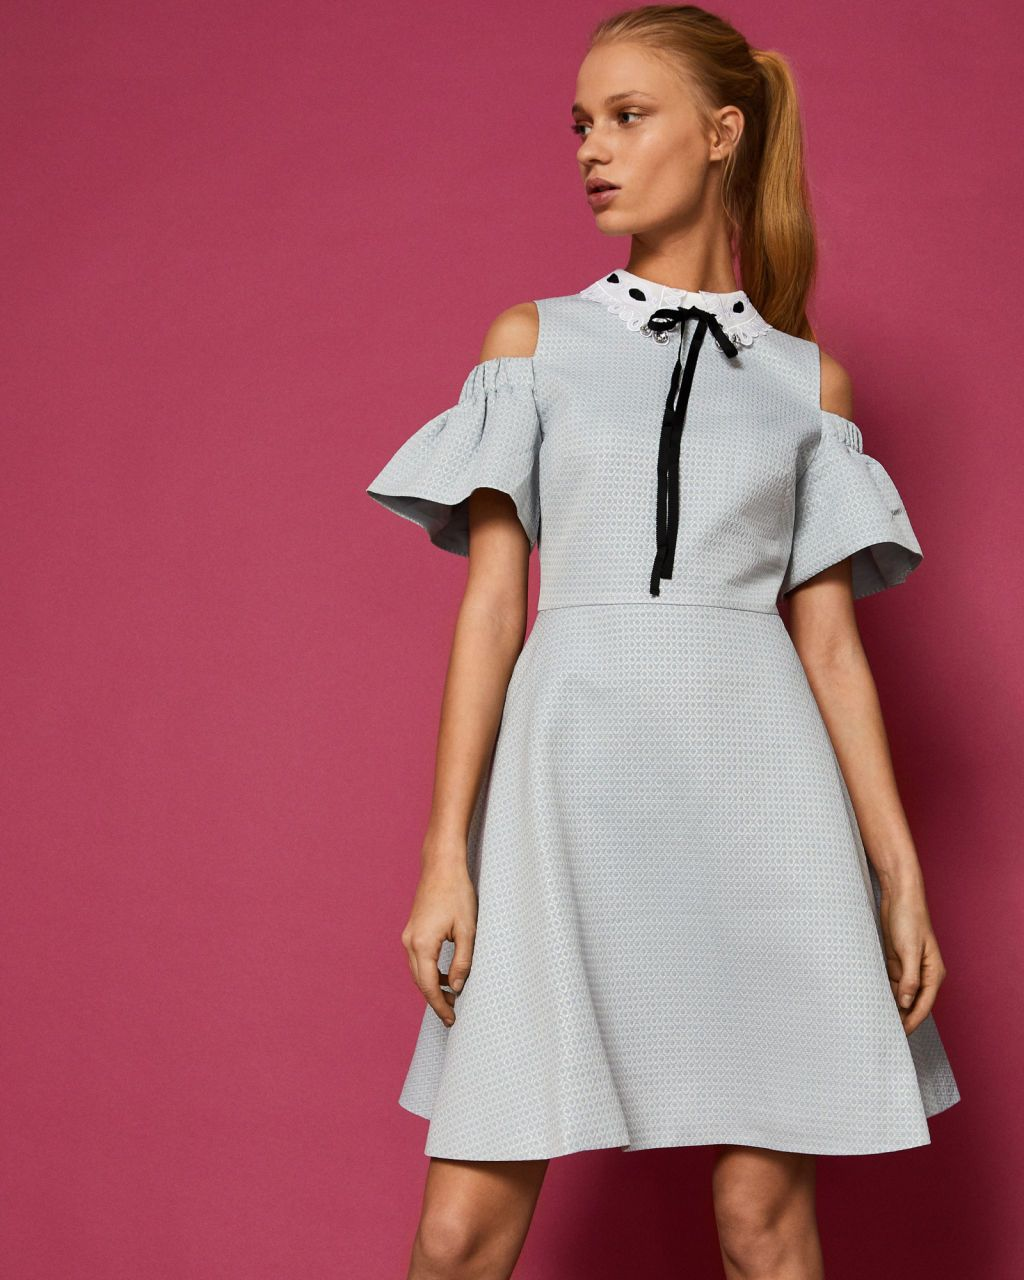 346b33824637f Cold shoulder bow detail dress - Baby Blue